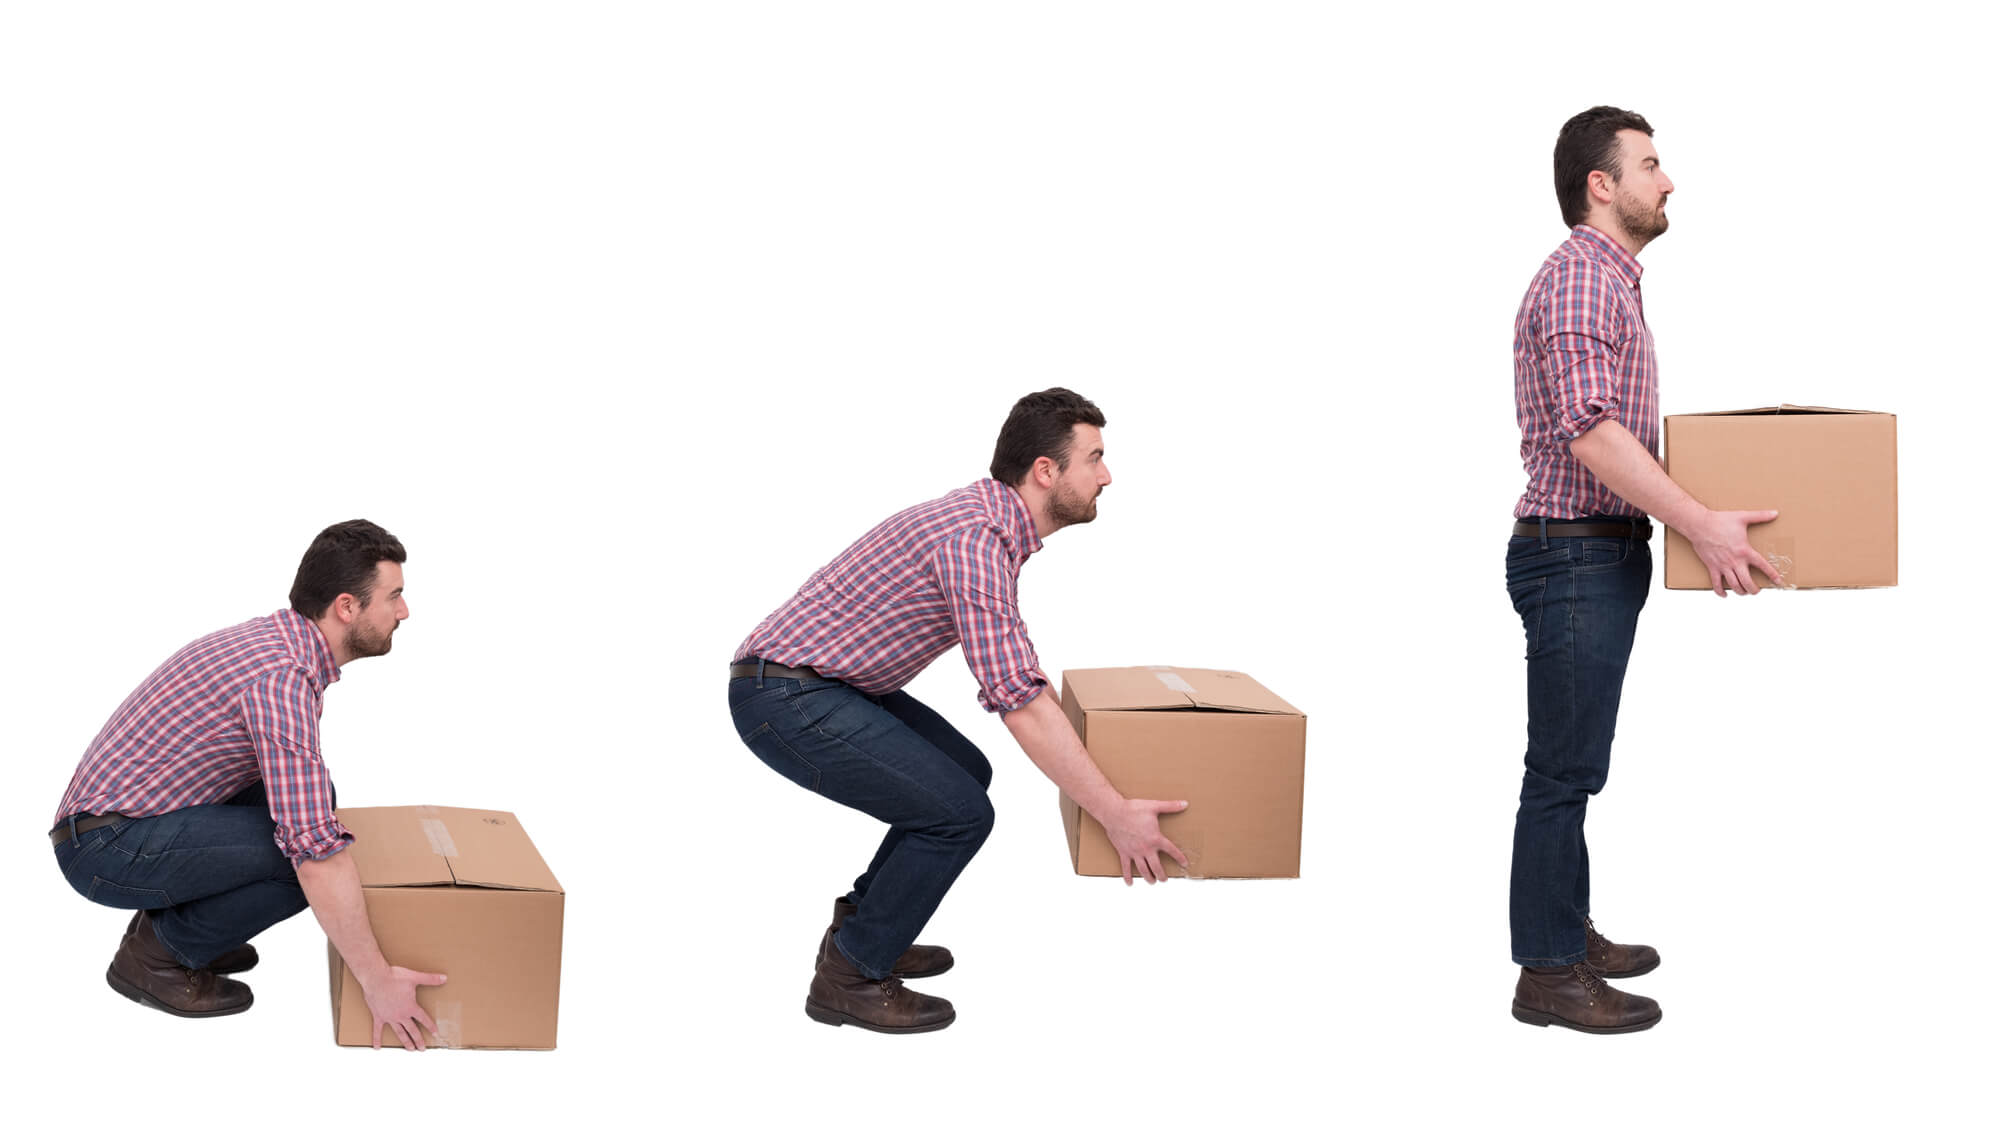 Man practicing correct lifting technique with large moving box.